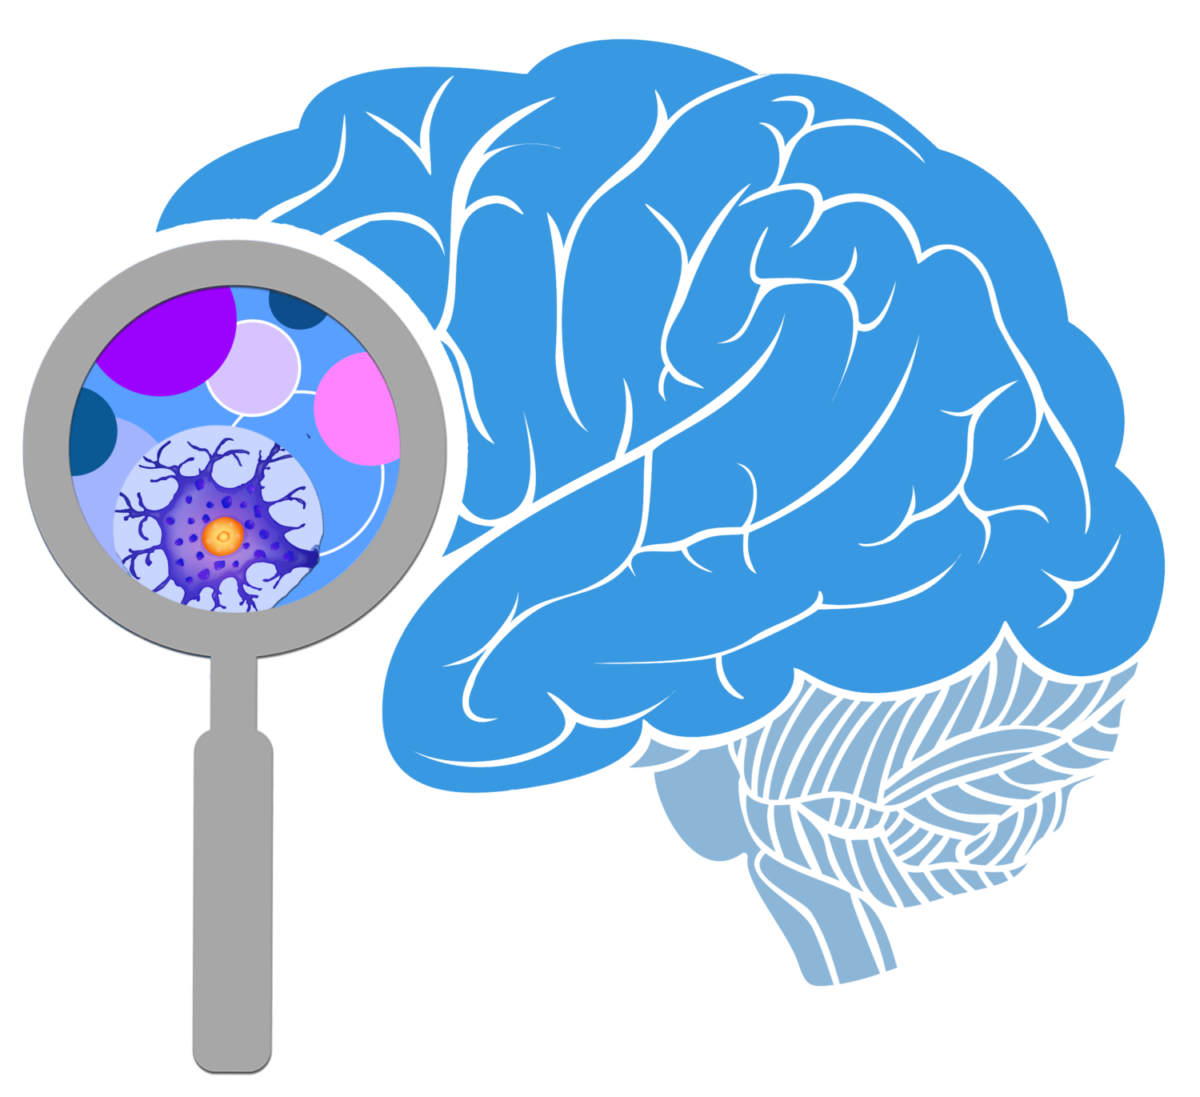 The initiative why study. Clipart brain brain function